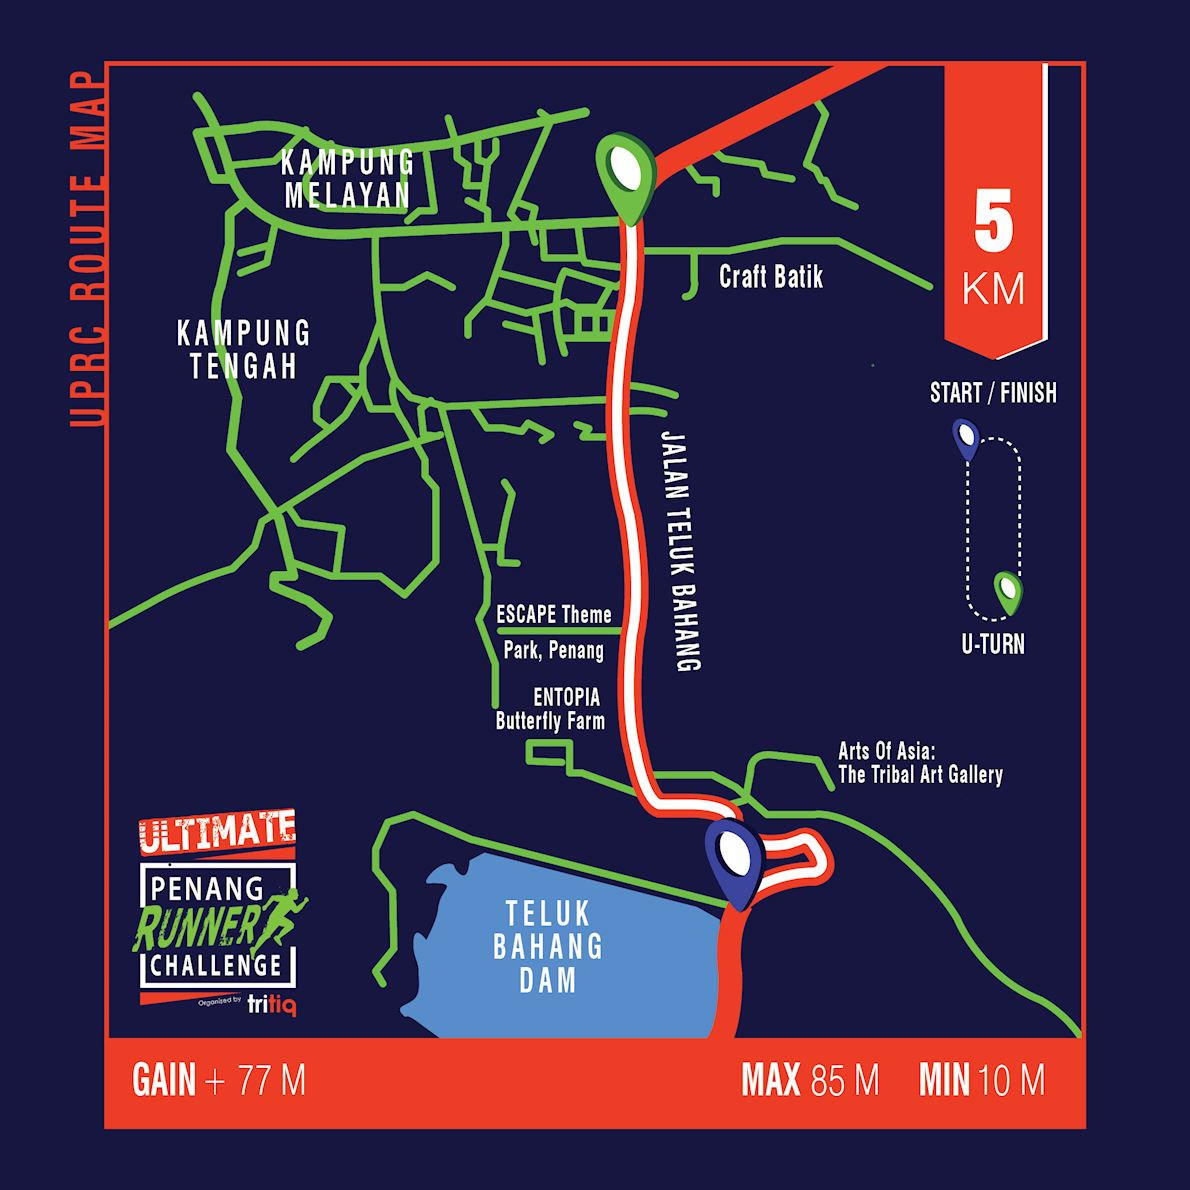 Ultimate Penang Runner Challenge Route Map